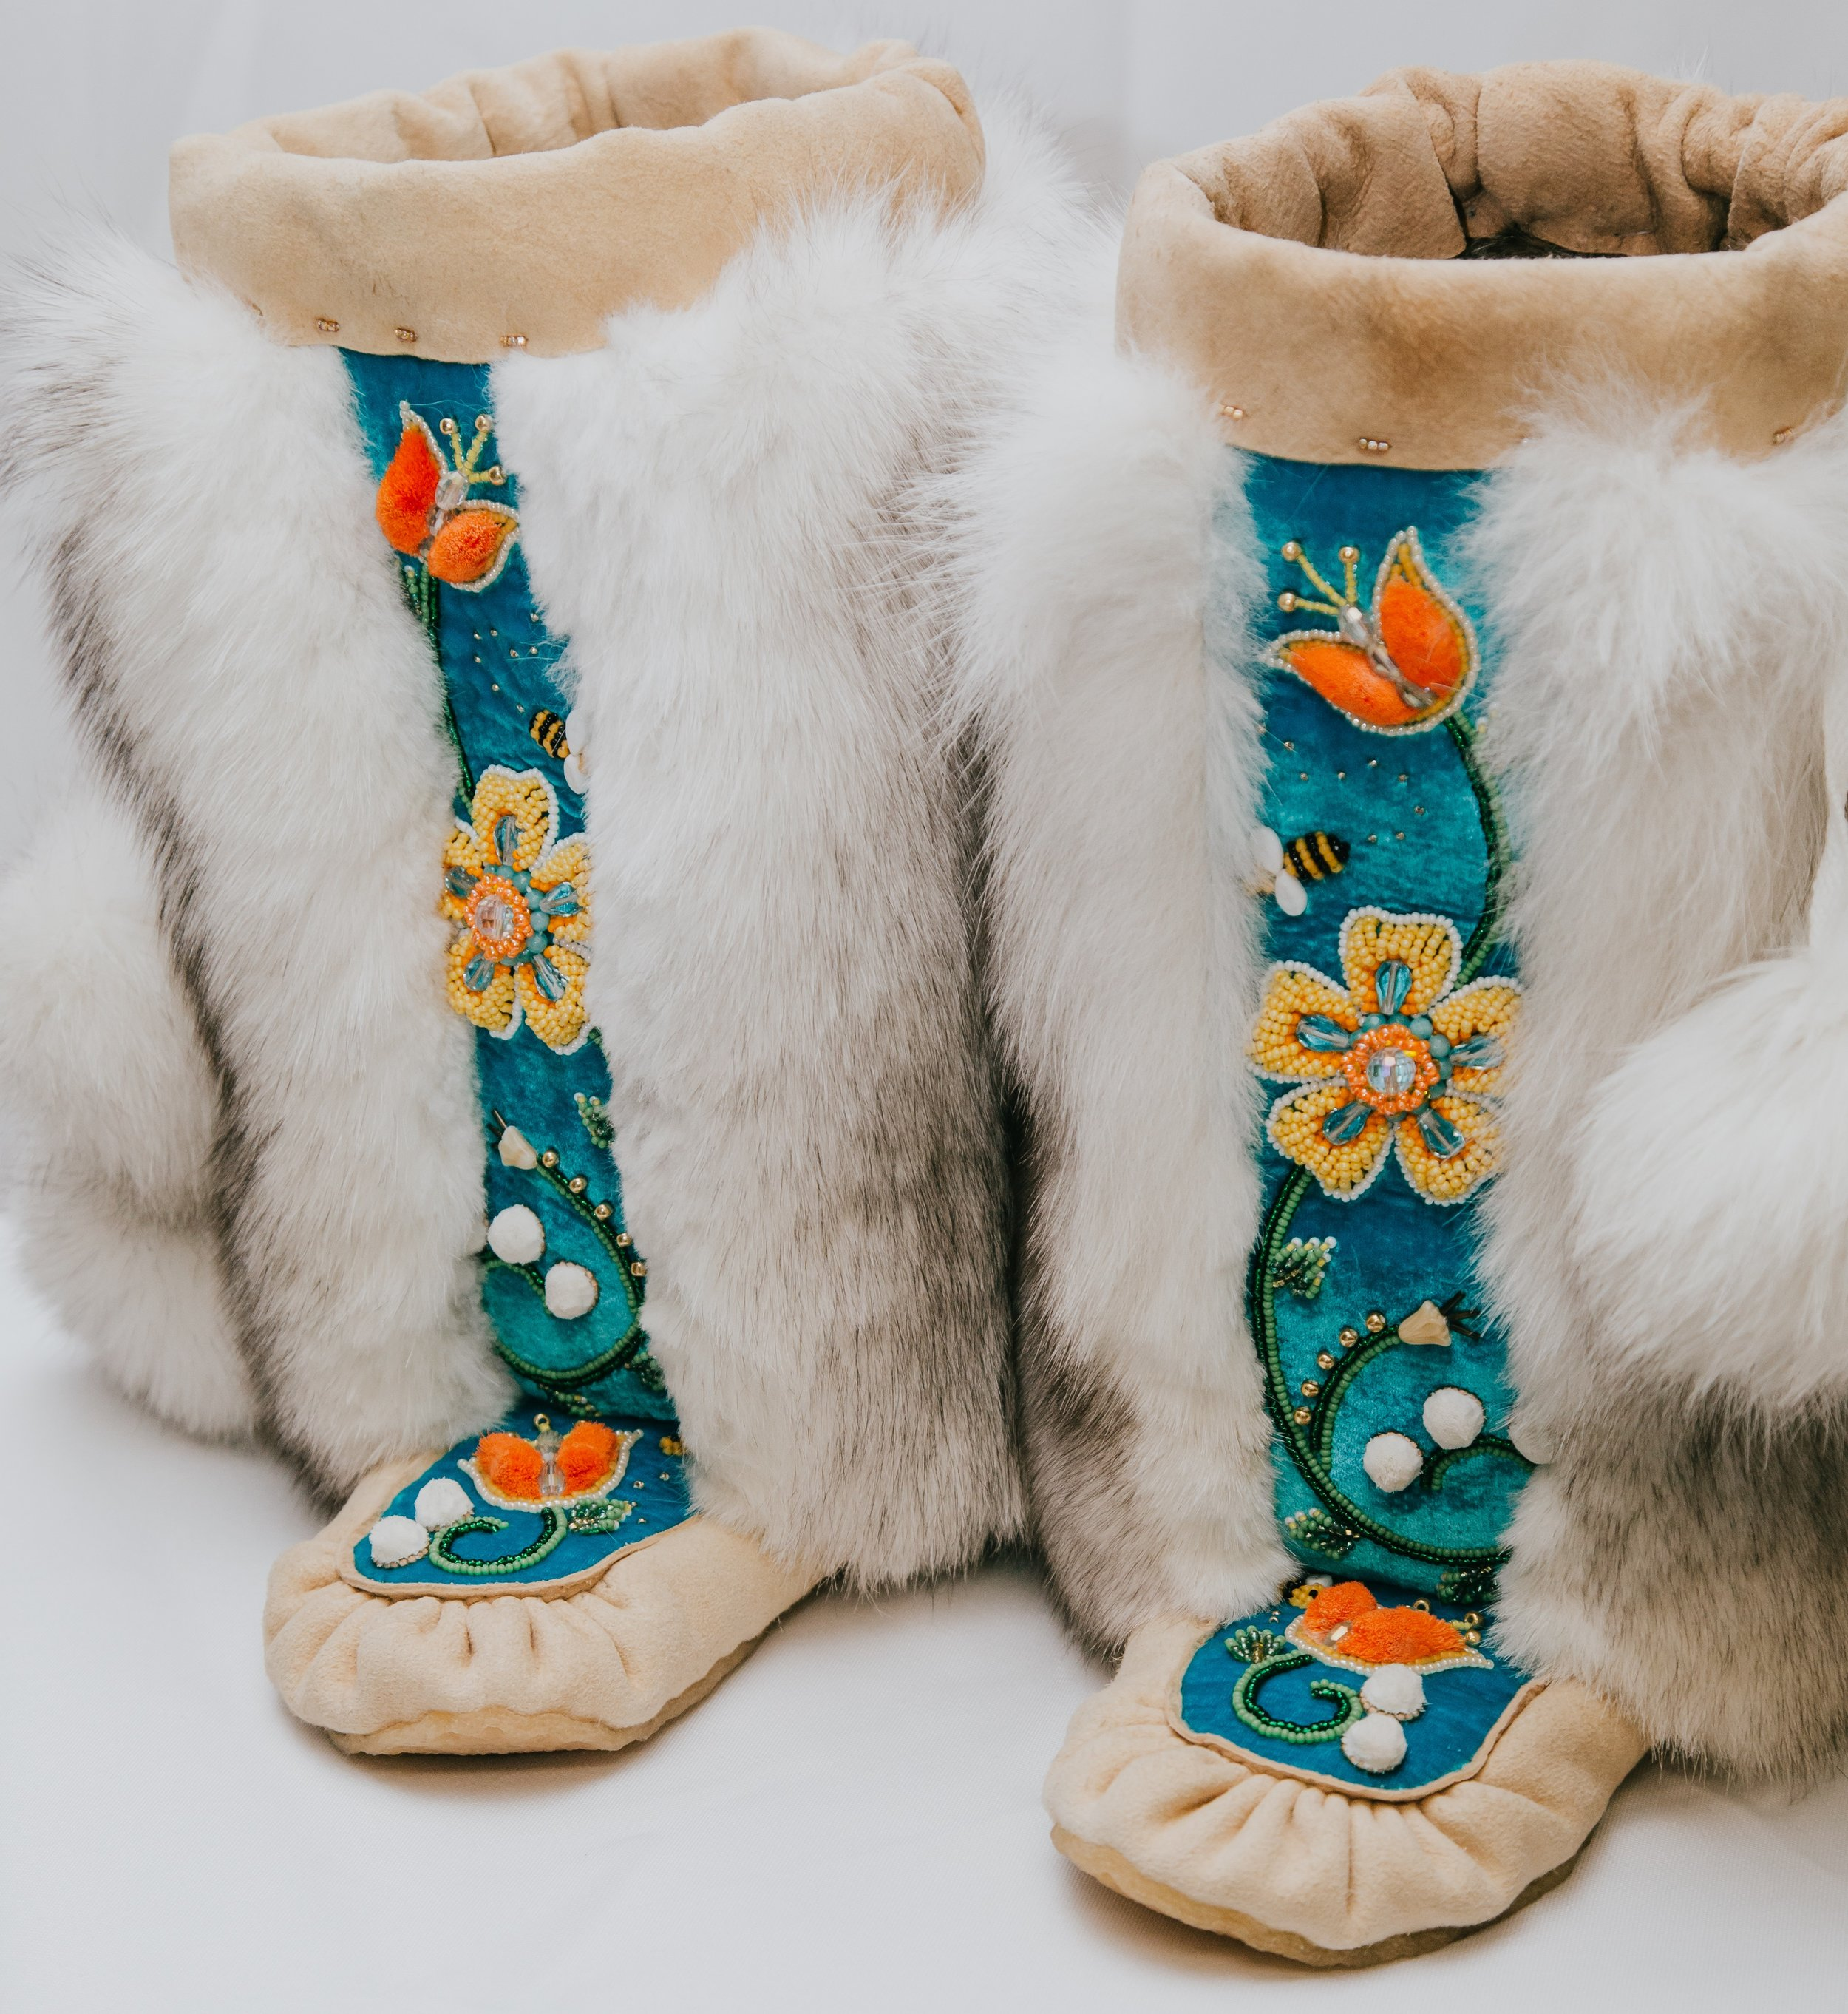 """"""" Bee-utiful""""  glass beads, leather, and fur boots  Samantha Jacobs"""